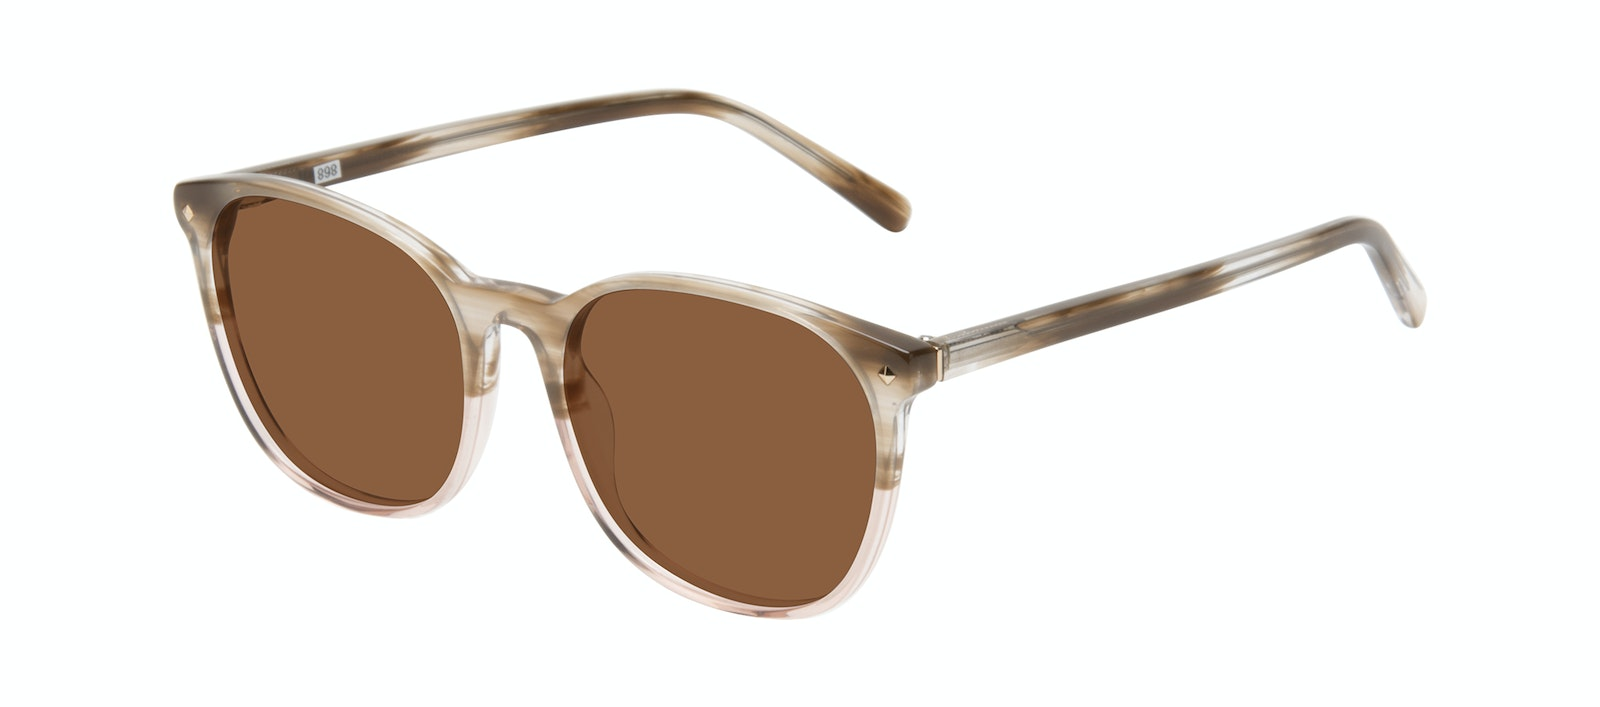 Affordable Fashion Glasses Round Sunglasses Women Revive Rosewood Tilt